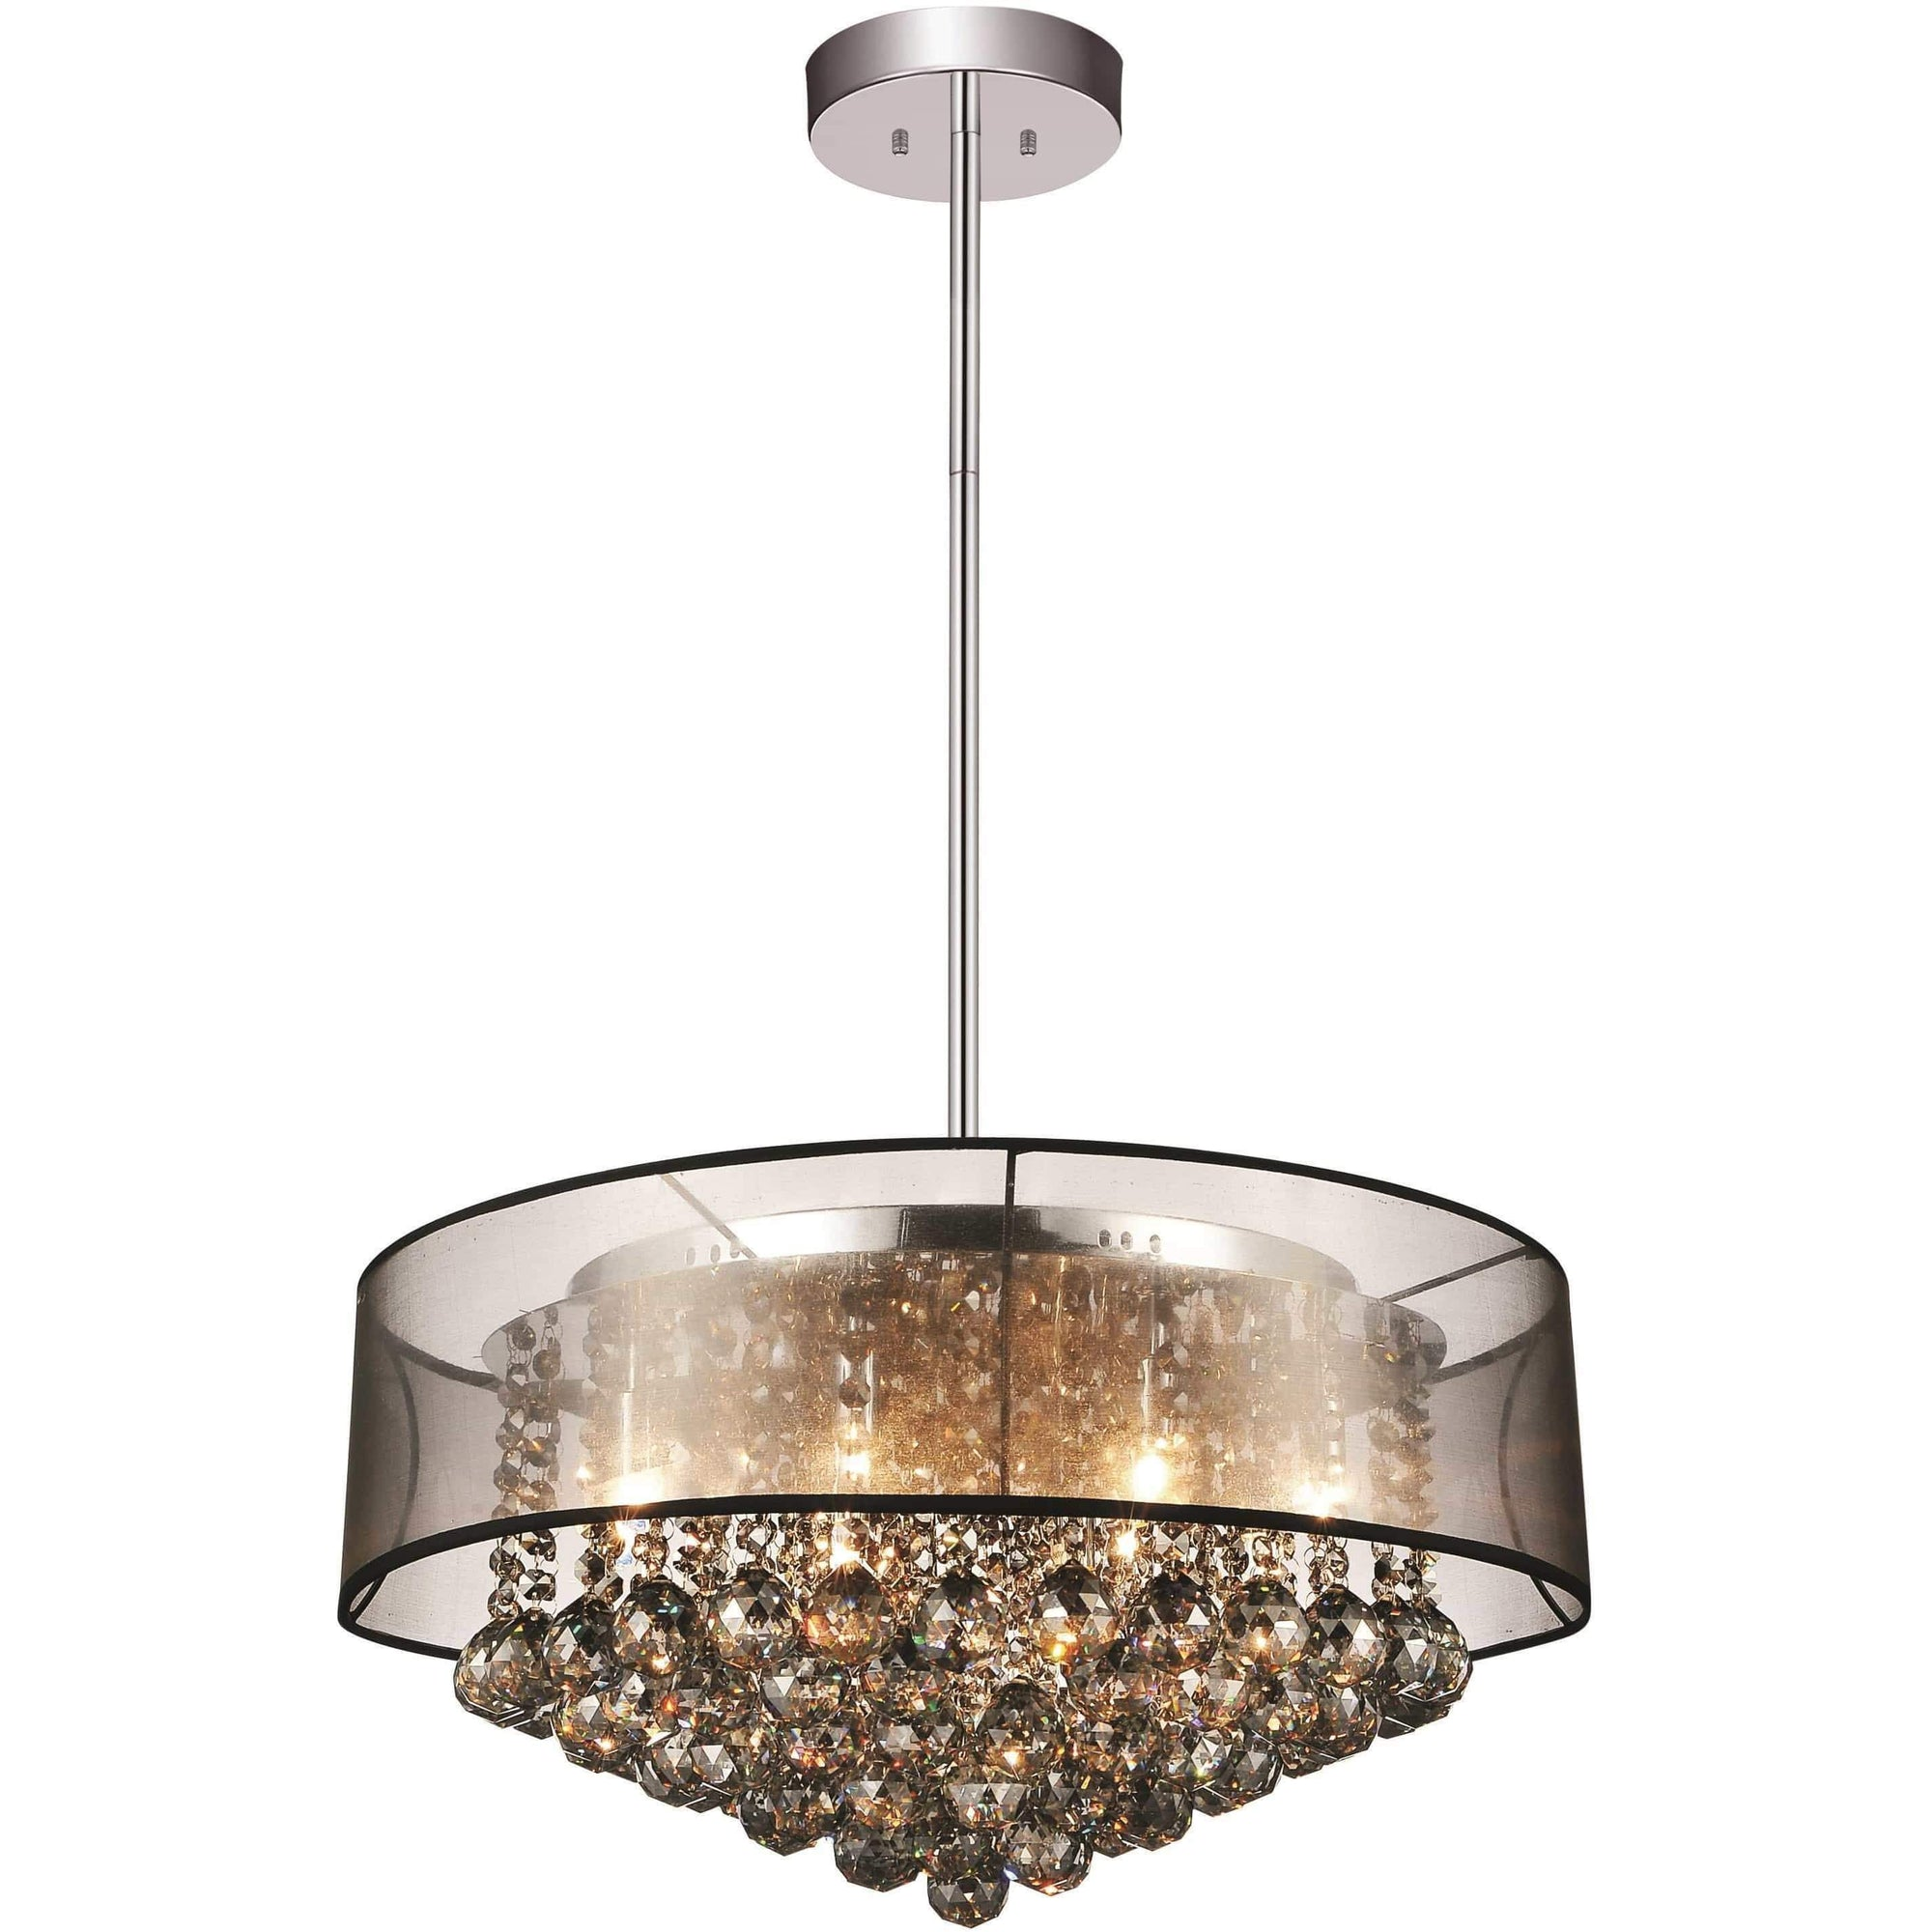 CWI Lighting Chandeliers Chrome / K9 Smoke Radiant 9 Light Drum Shade Chandelier with Chrome finish by CWI Lighting 5062P20C (Smoke + BK)